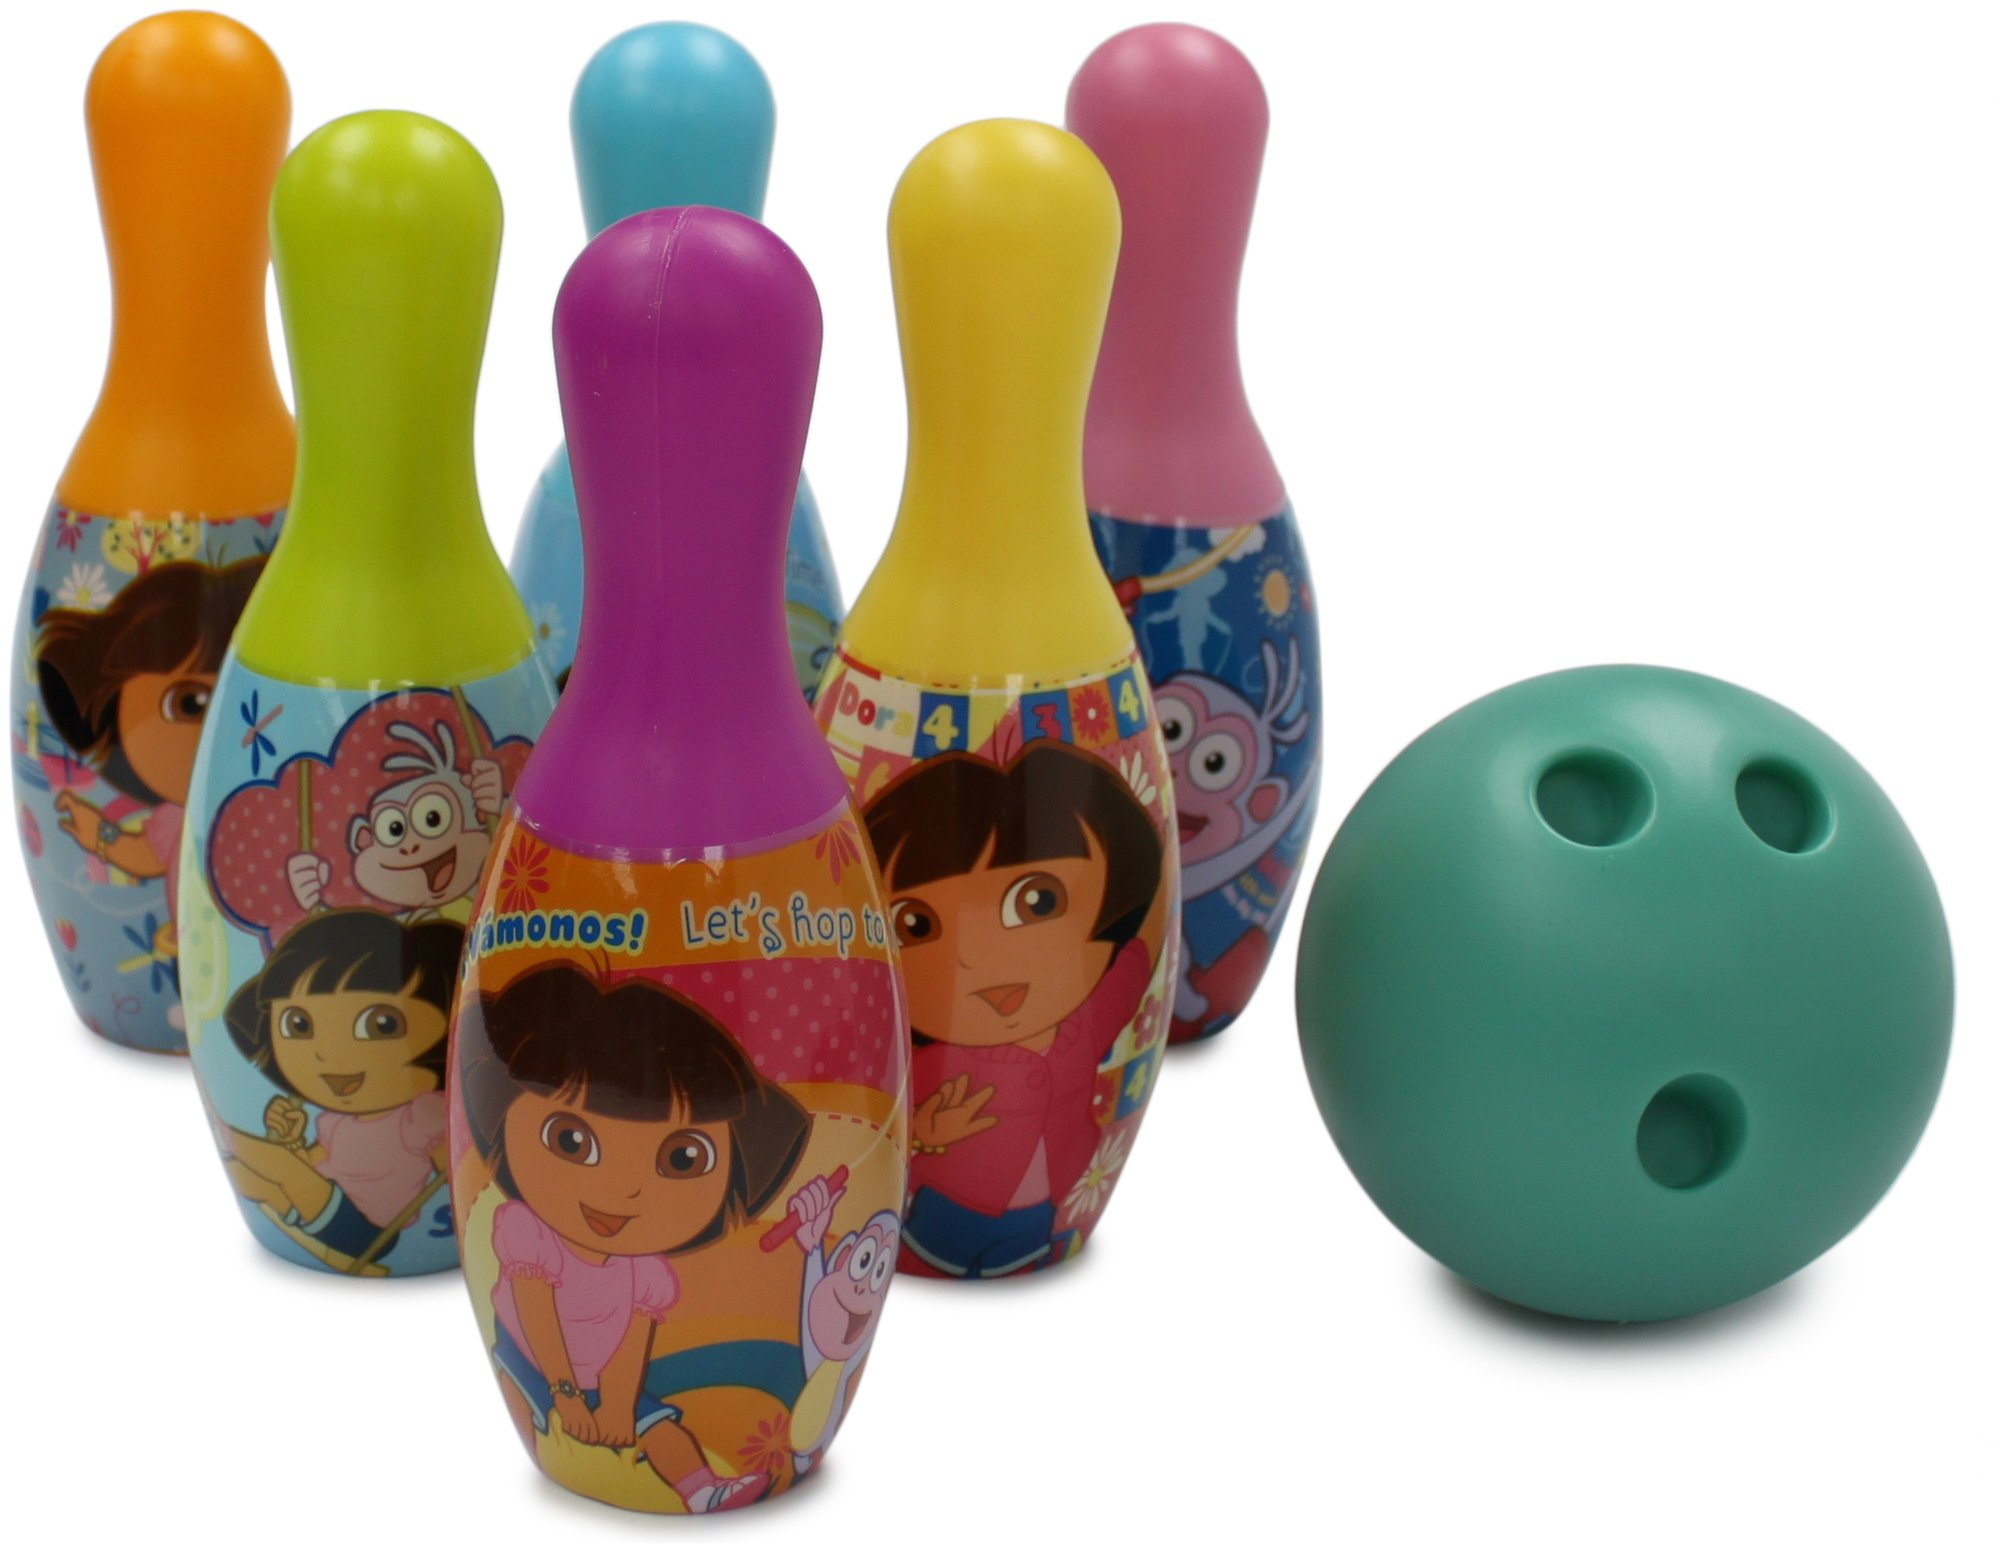 Dora The Explorer Bowling Set